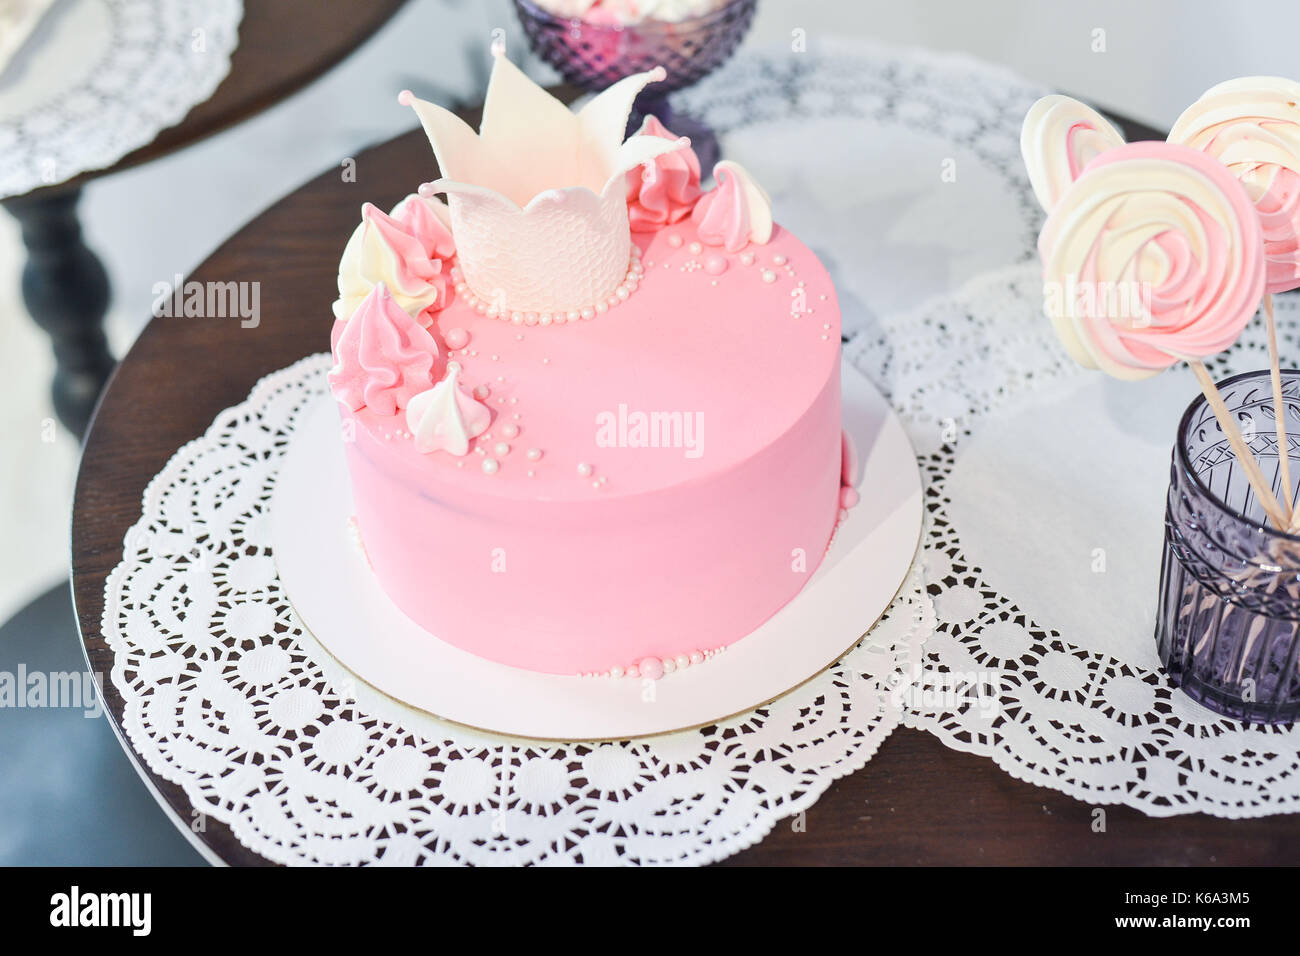 wedding cake for guests at a wedding party from the berries Stock Photo